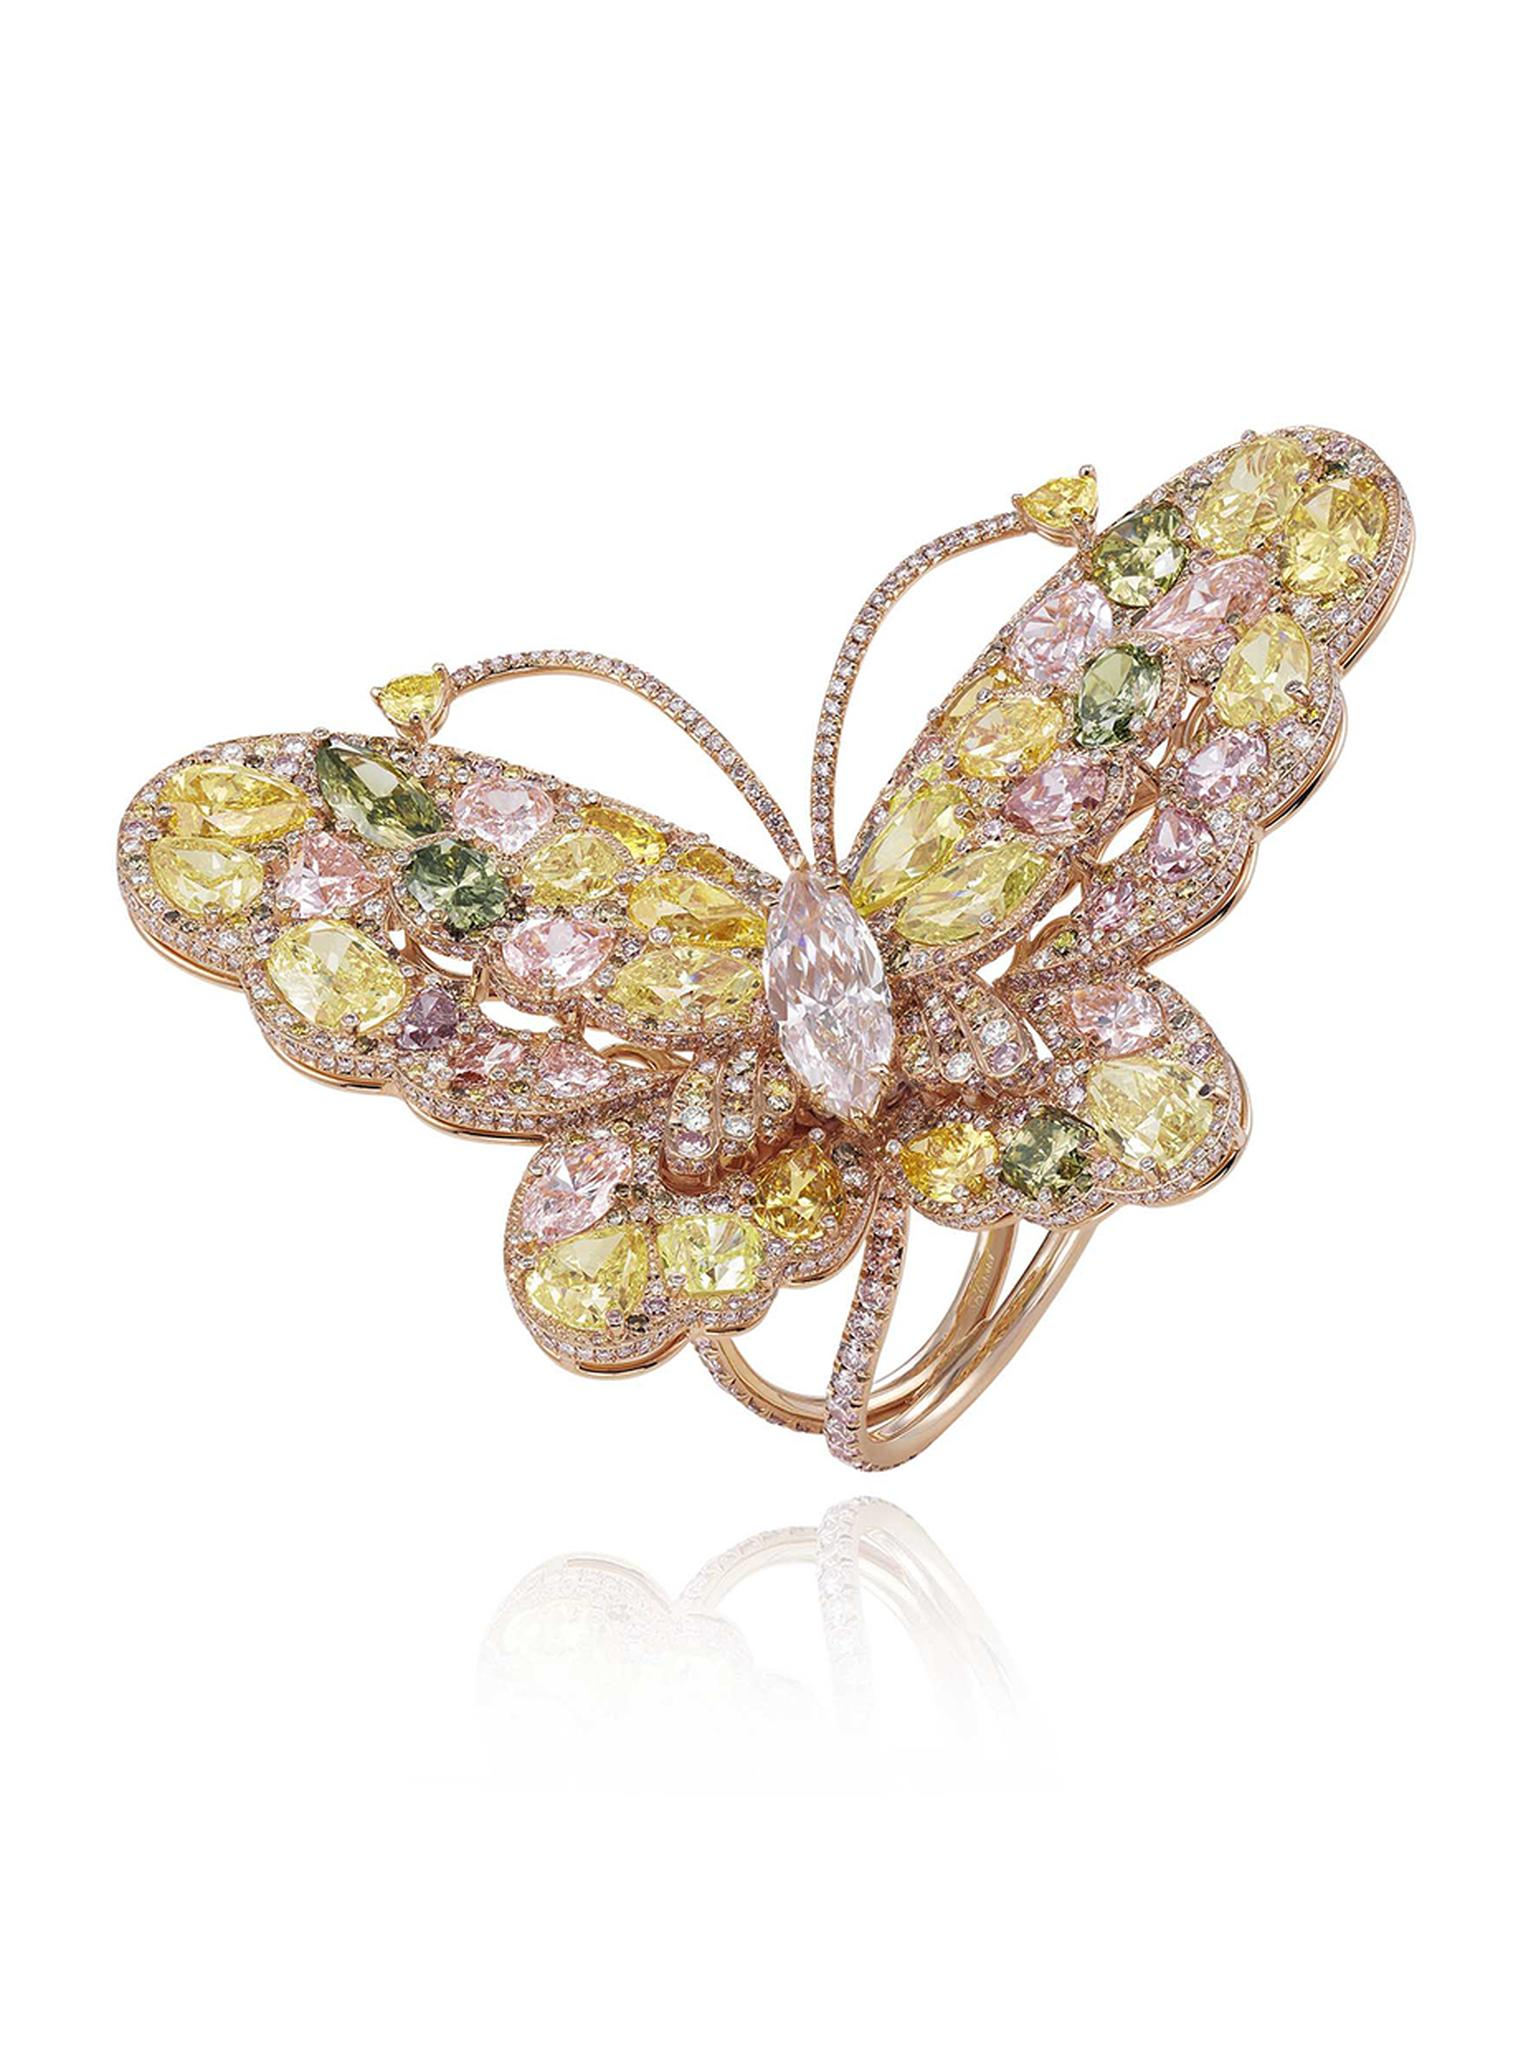 Chopard 2014 Red Carpet Collection rose gold butterfly ring featuring pink, yellow and white diamonds.